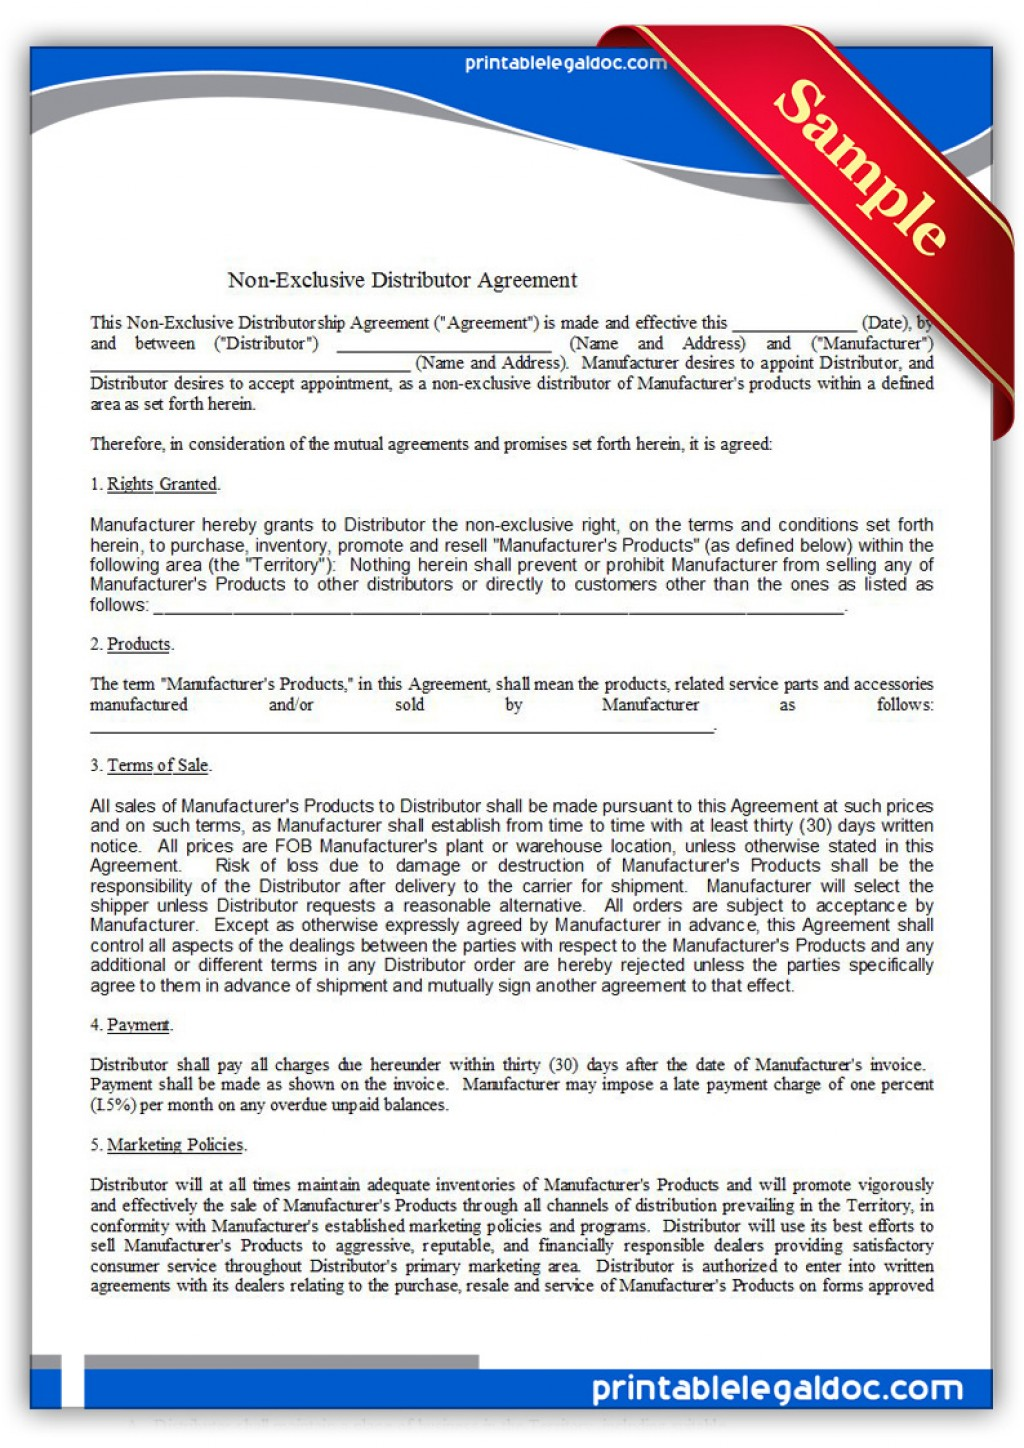 009 Unbelievable Exclusive Distribution Agreement Template Free High Definition  Download Australia NonLarge